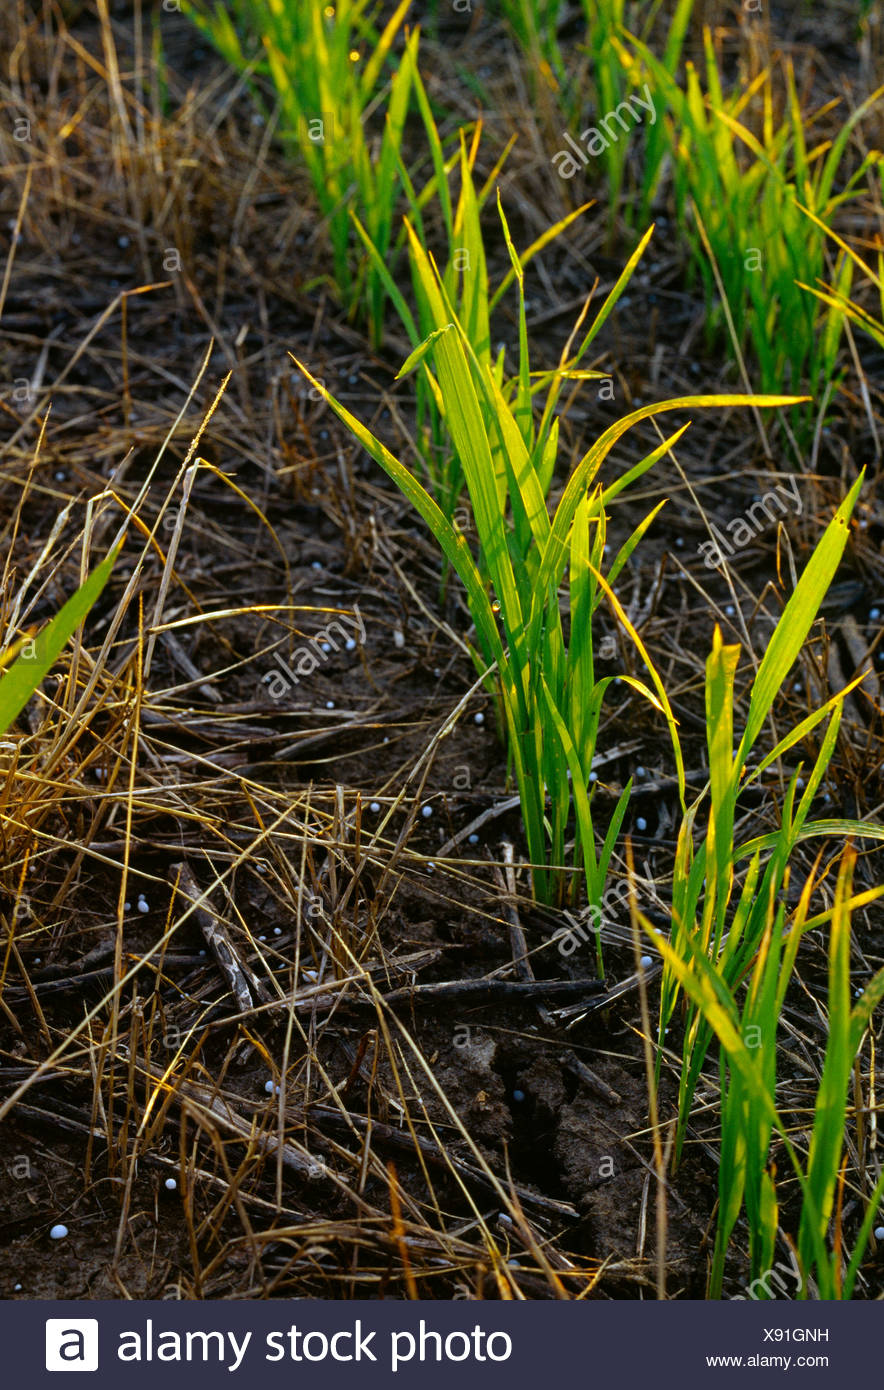 Agriculture - Closeup of early growth no till rice plants growing in soybean & weed stubble at the pre flood stage / AR, USA. Stock Photo